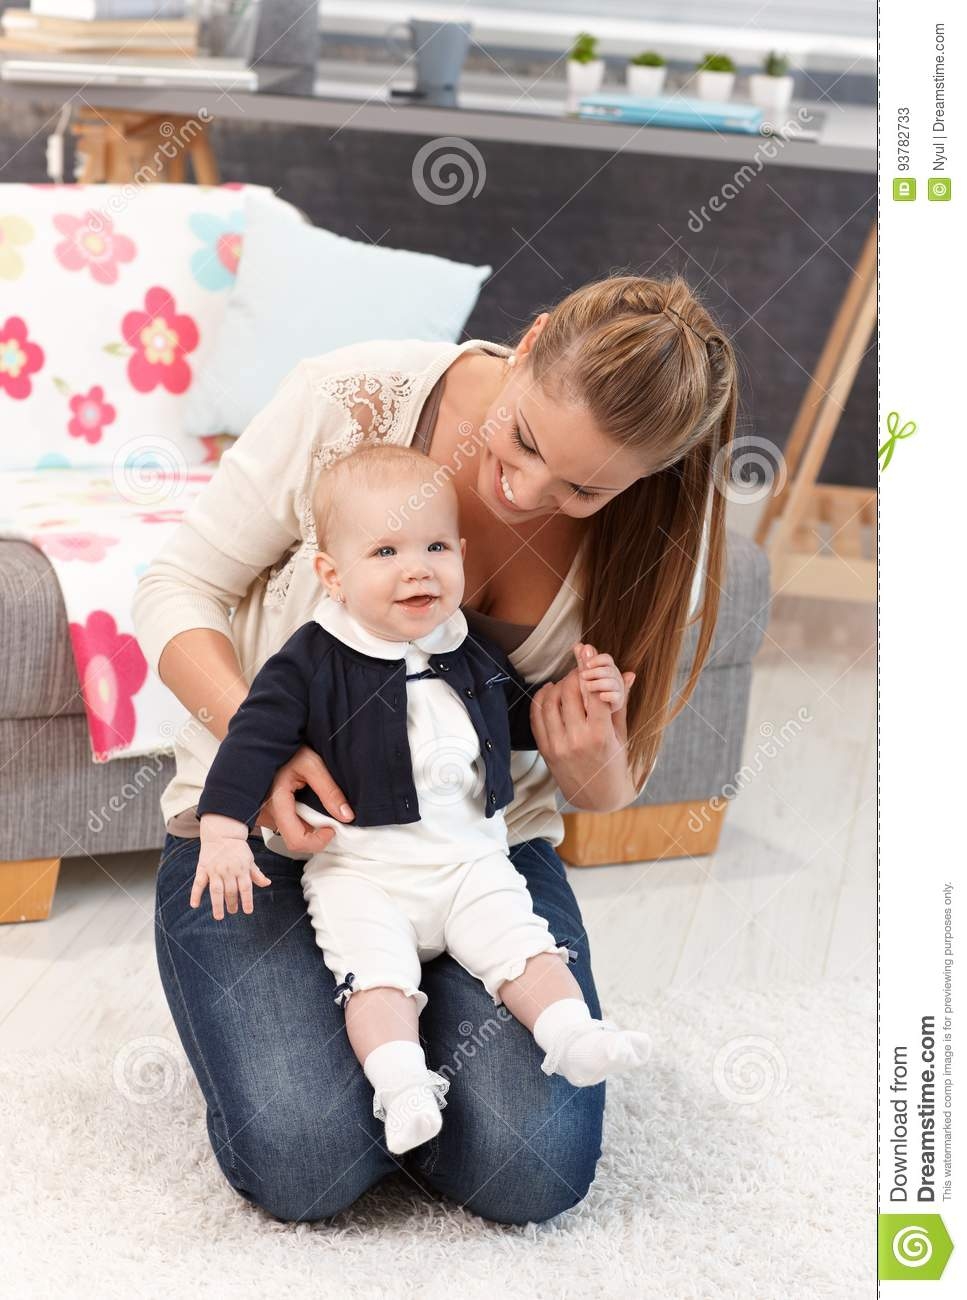 Mother kneeling on floor with baby girl on lap